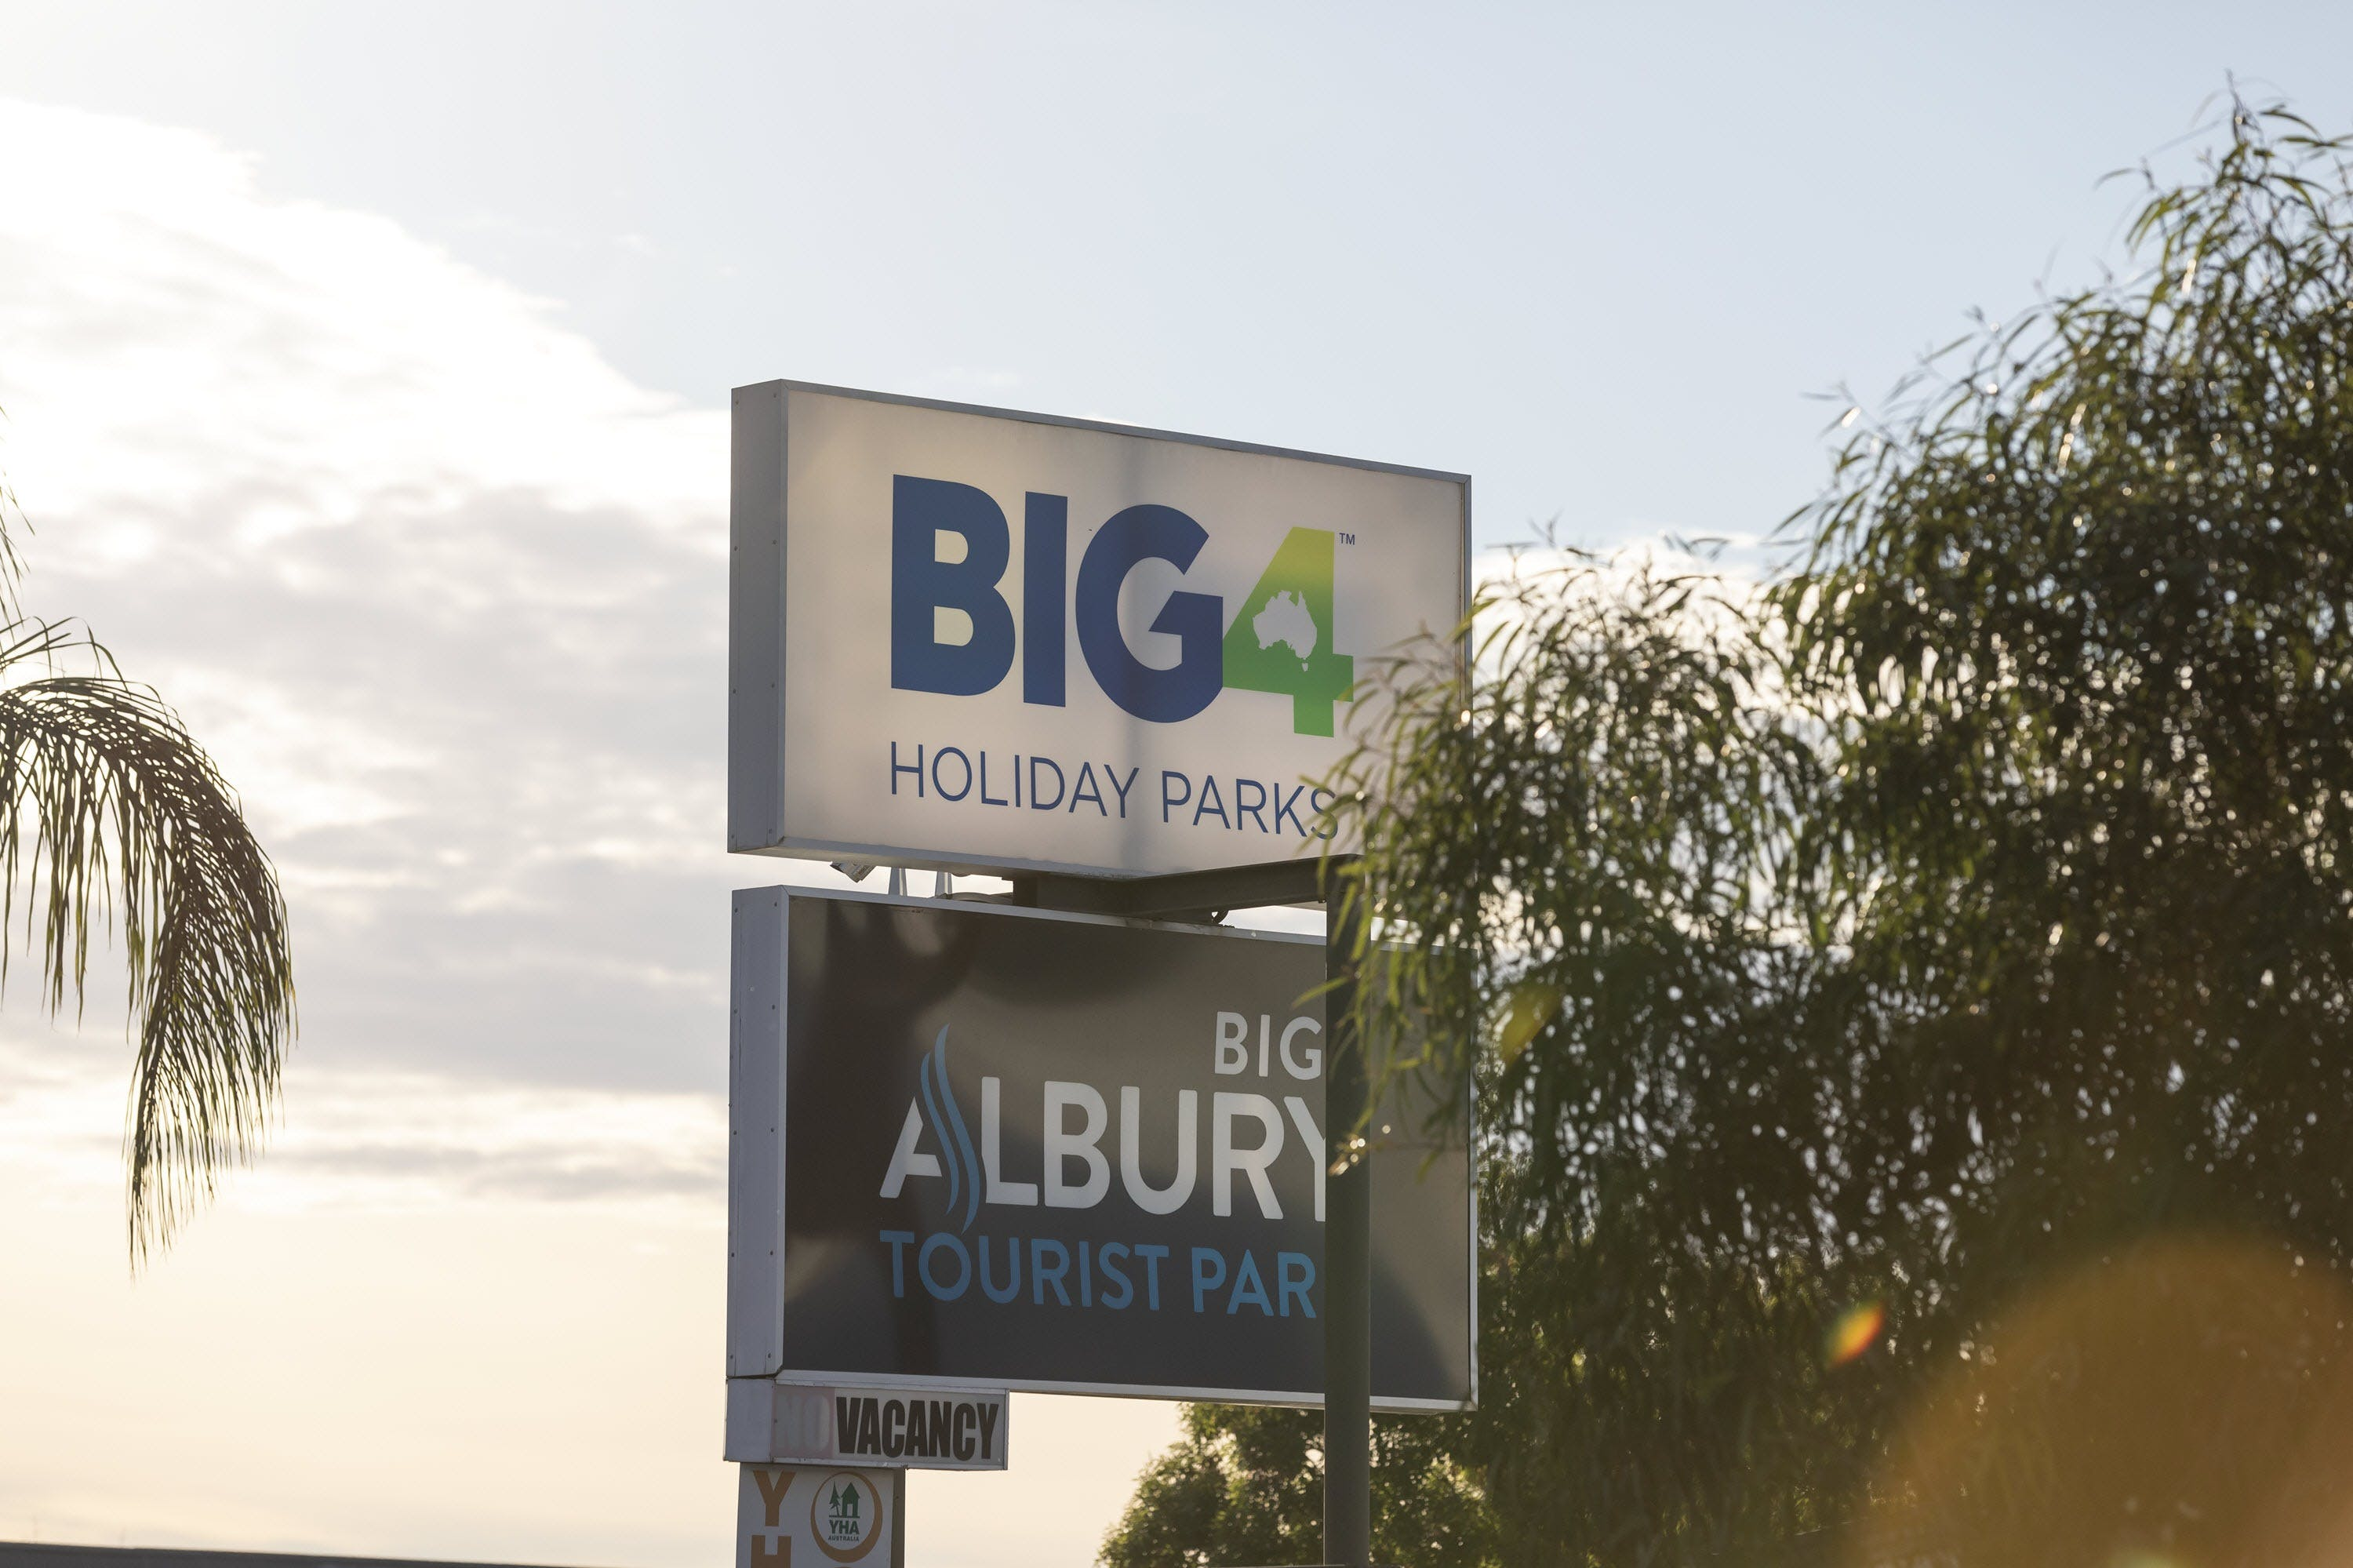 BIG4 Albury Tourist Park - Accommodation Resorts